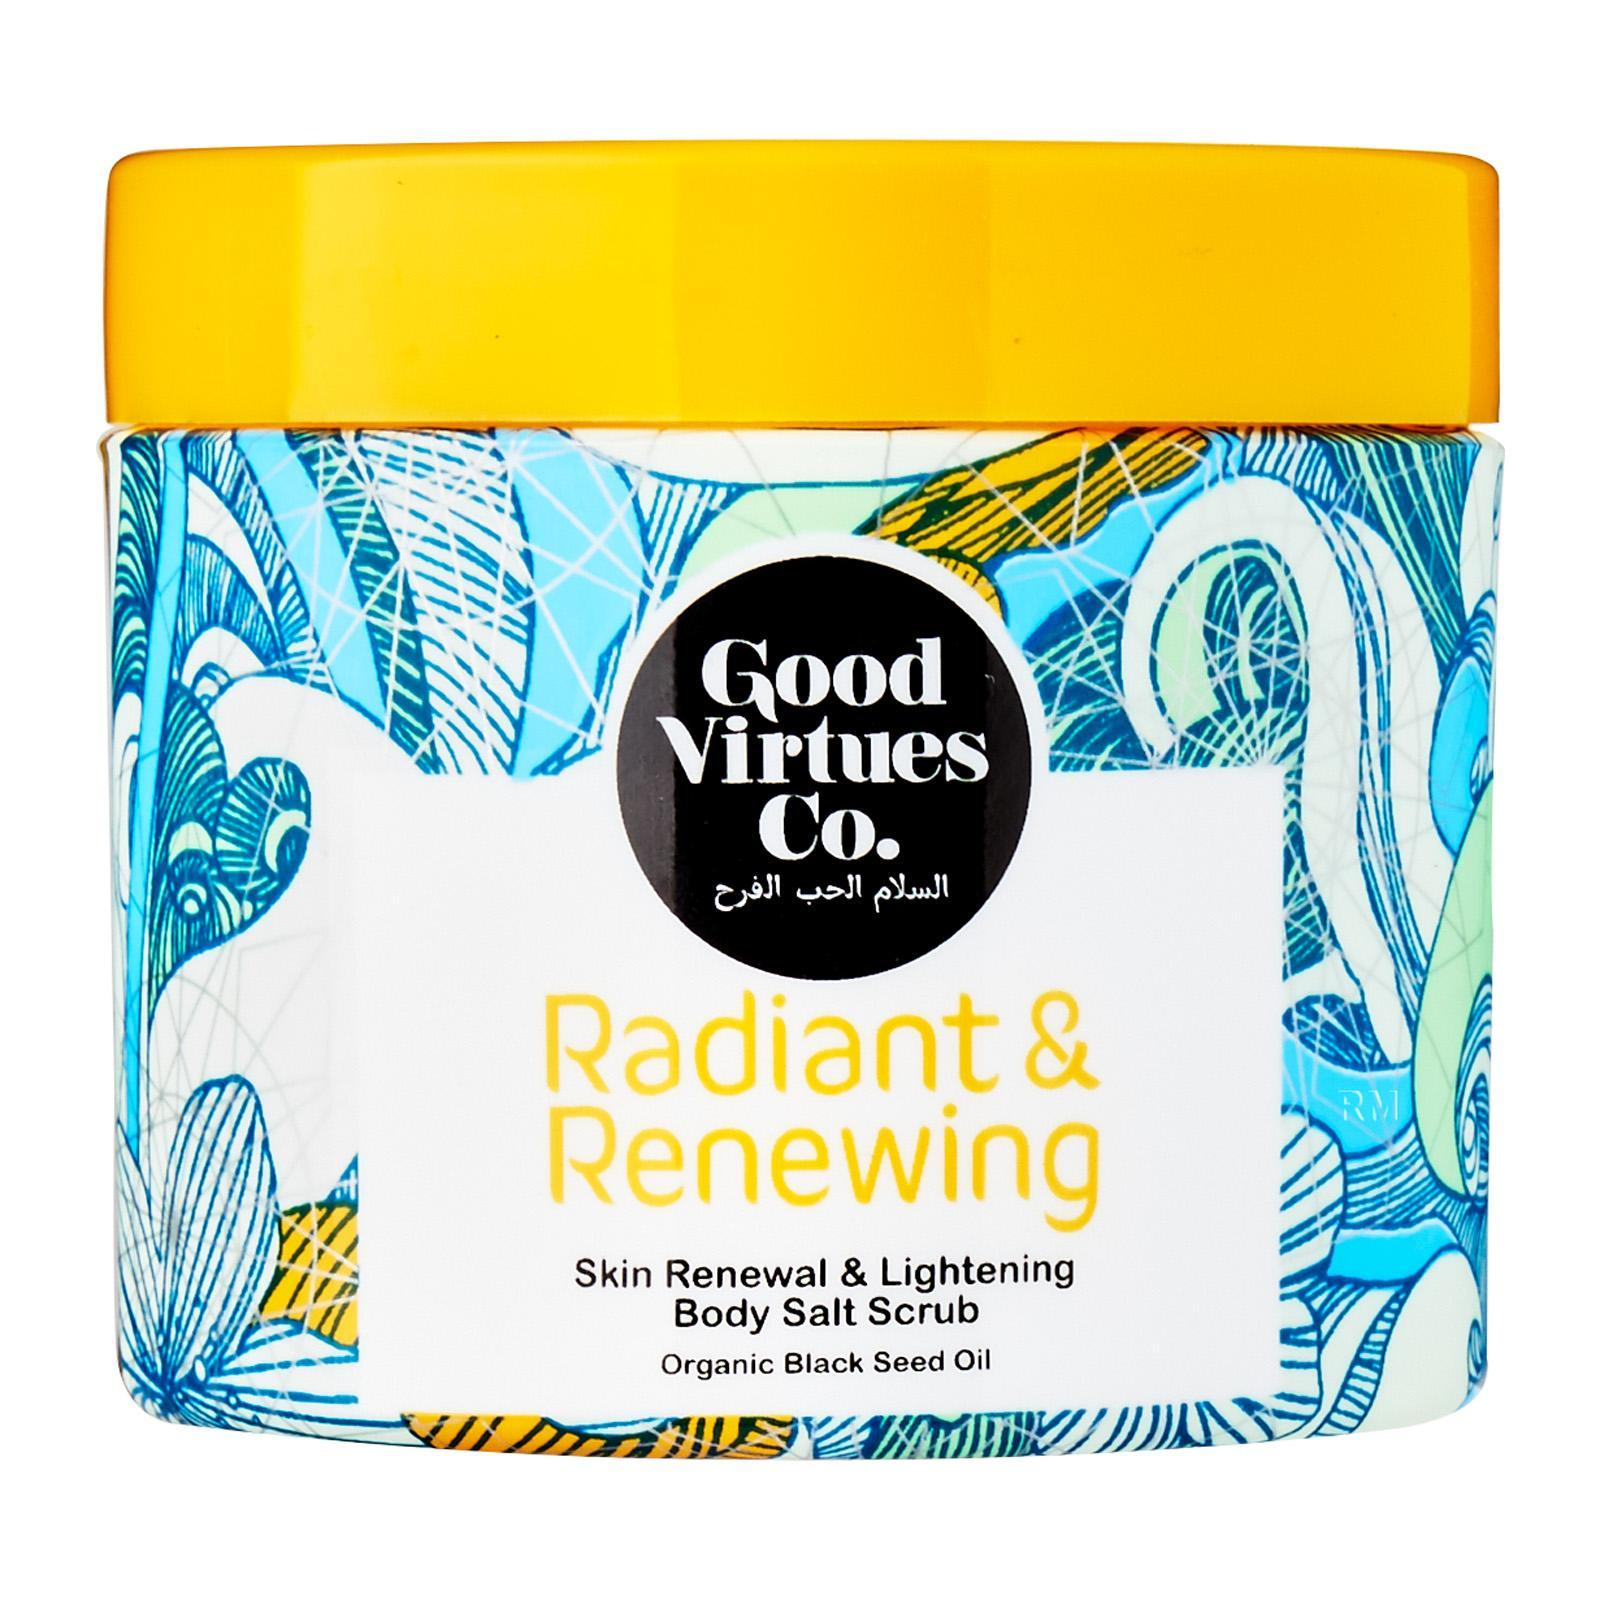 Good Virtues Co. Skin Renewal and Lightening Body Salt Scrub